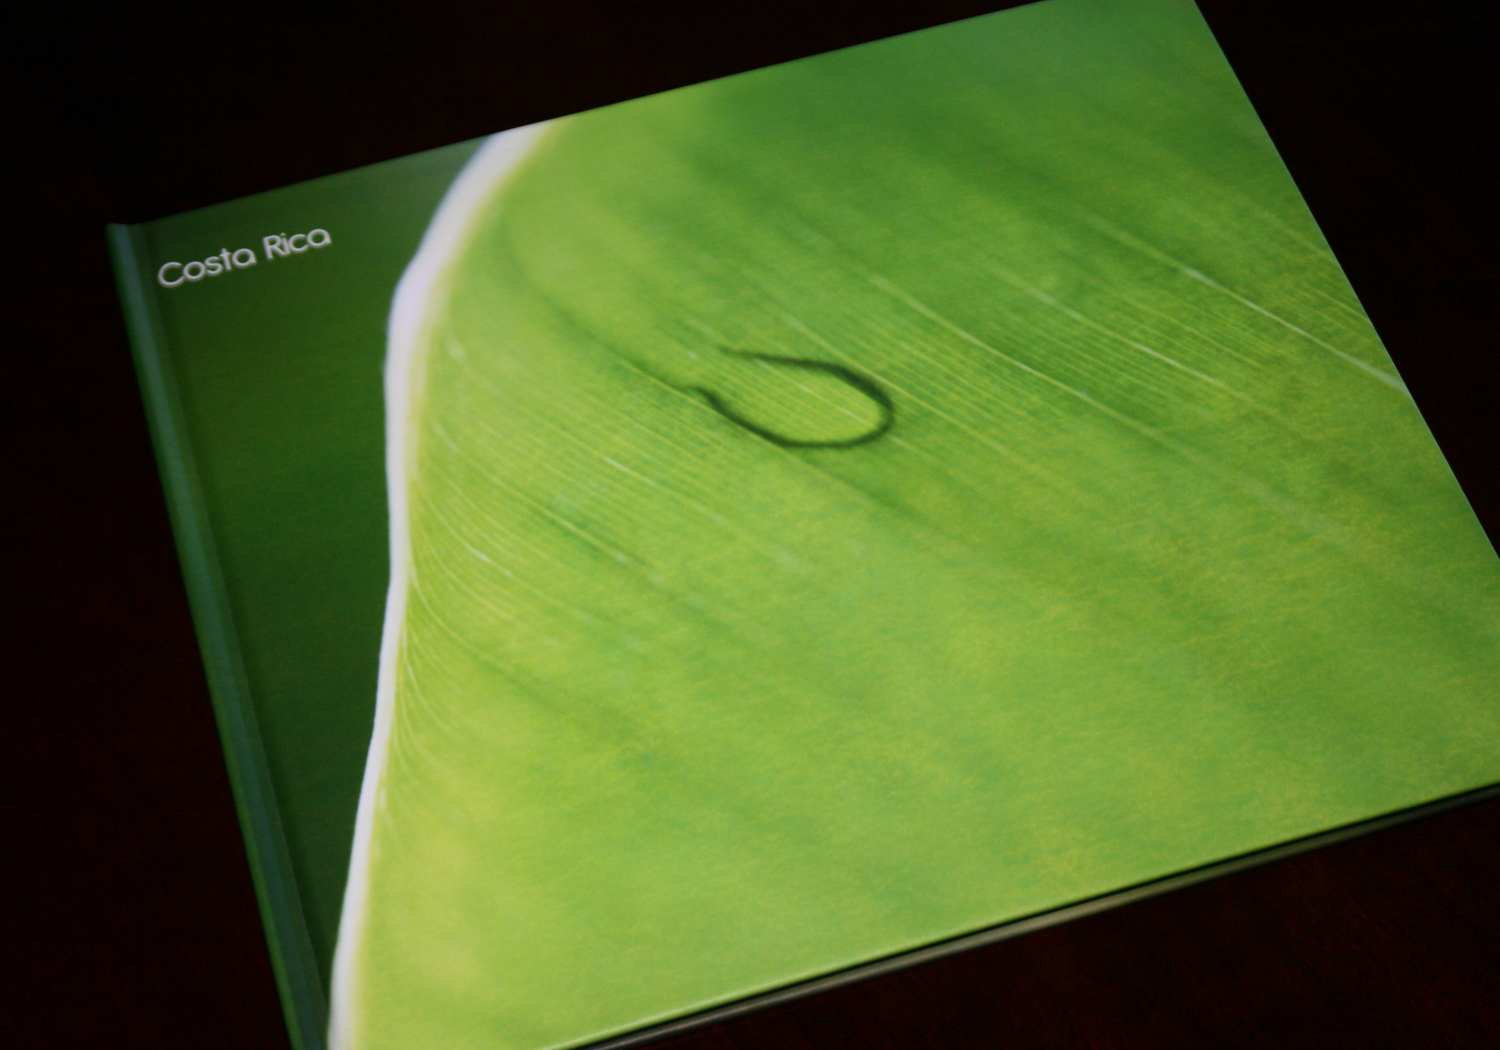 Costa Rica Coffee Table Book